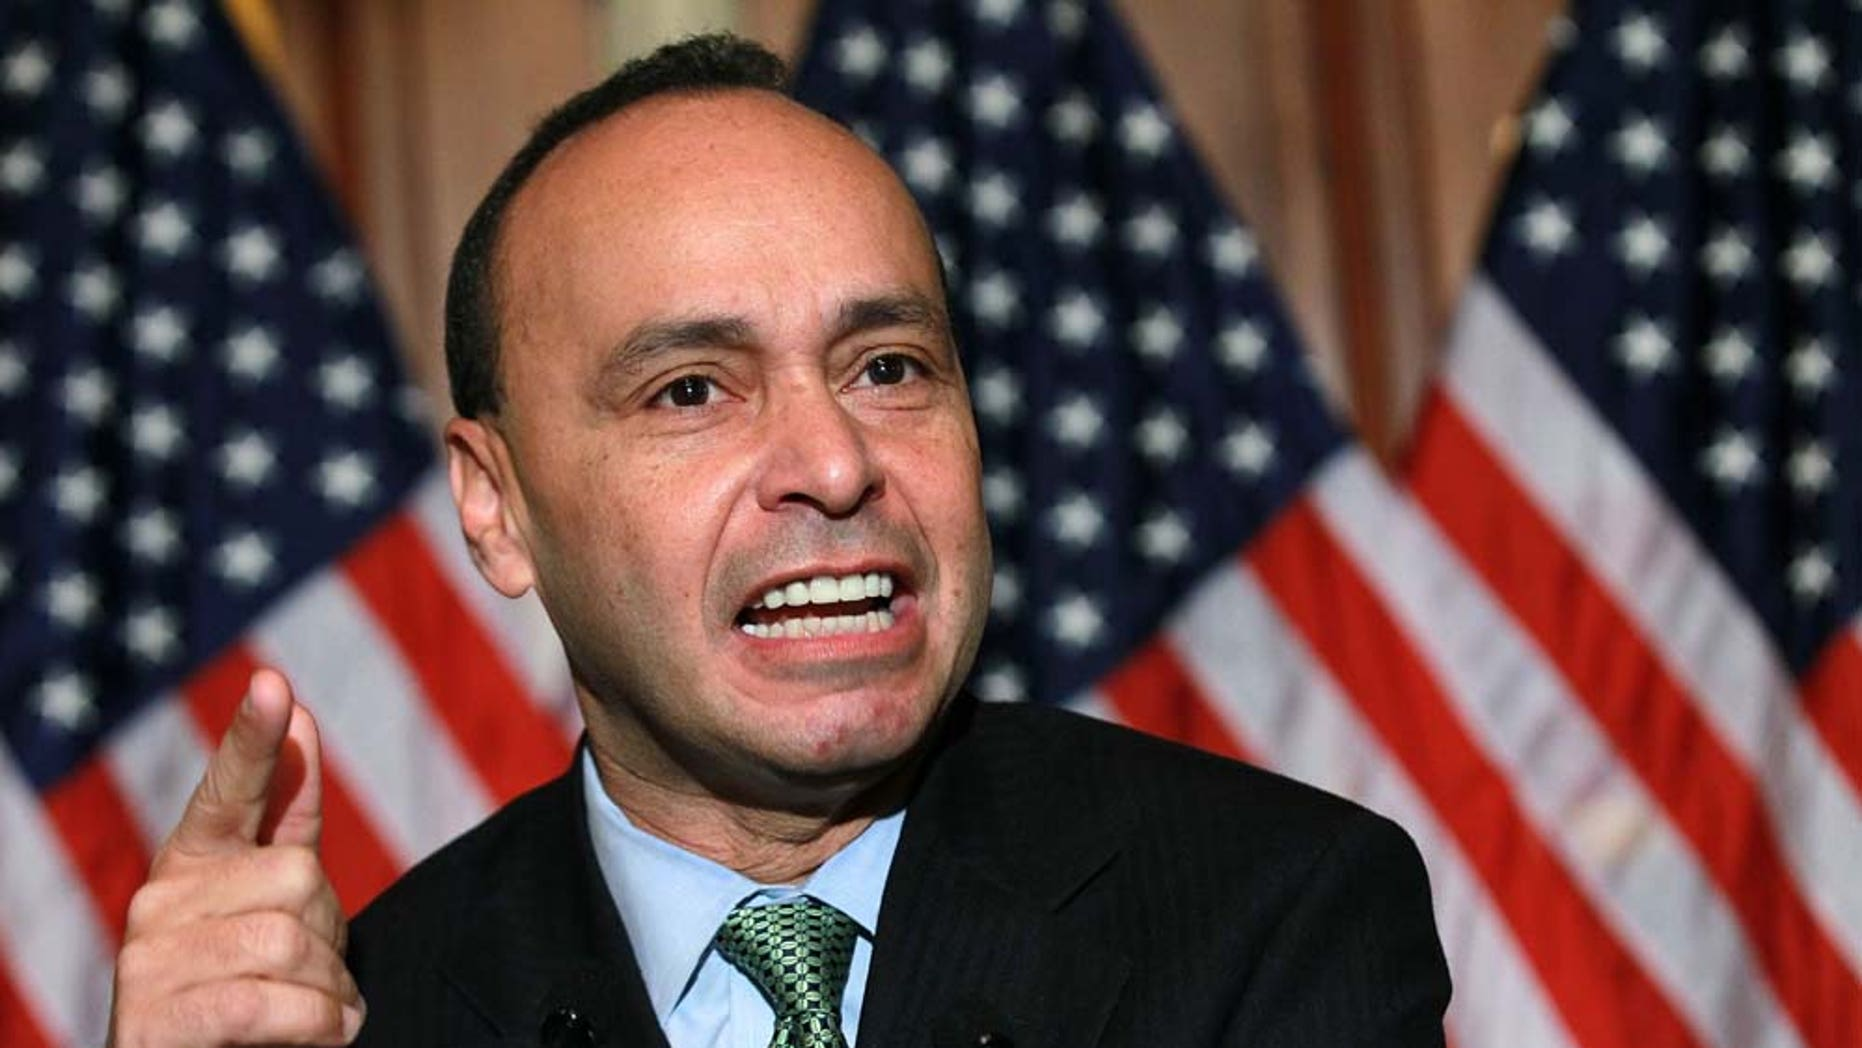 WASHINGTON, DC - DECEMBER 08:  U.S. Rep. Luis Gutierrez (D-IL) speaks during a news conference on the Development, Relief and Education for Alien Minors Act, also known as DREAM Act, on Capitol Hill December 8, 2010 in Washington, DC. The Senate and the House will vote today on the DREAM Act, which would grant young illegal immigrants citizenship if they attend college or join the military.  (Photo by Alex Wong/Getty Images)